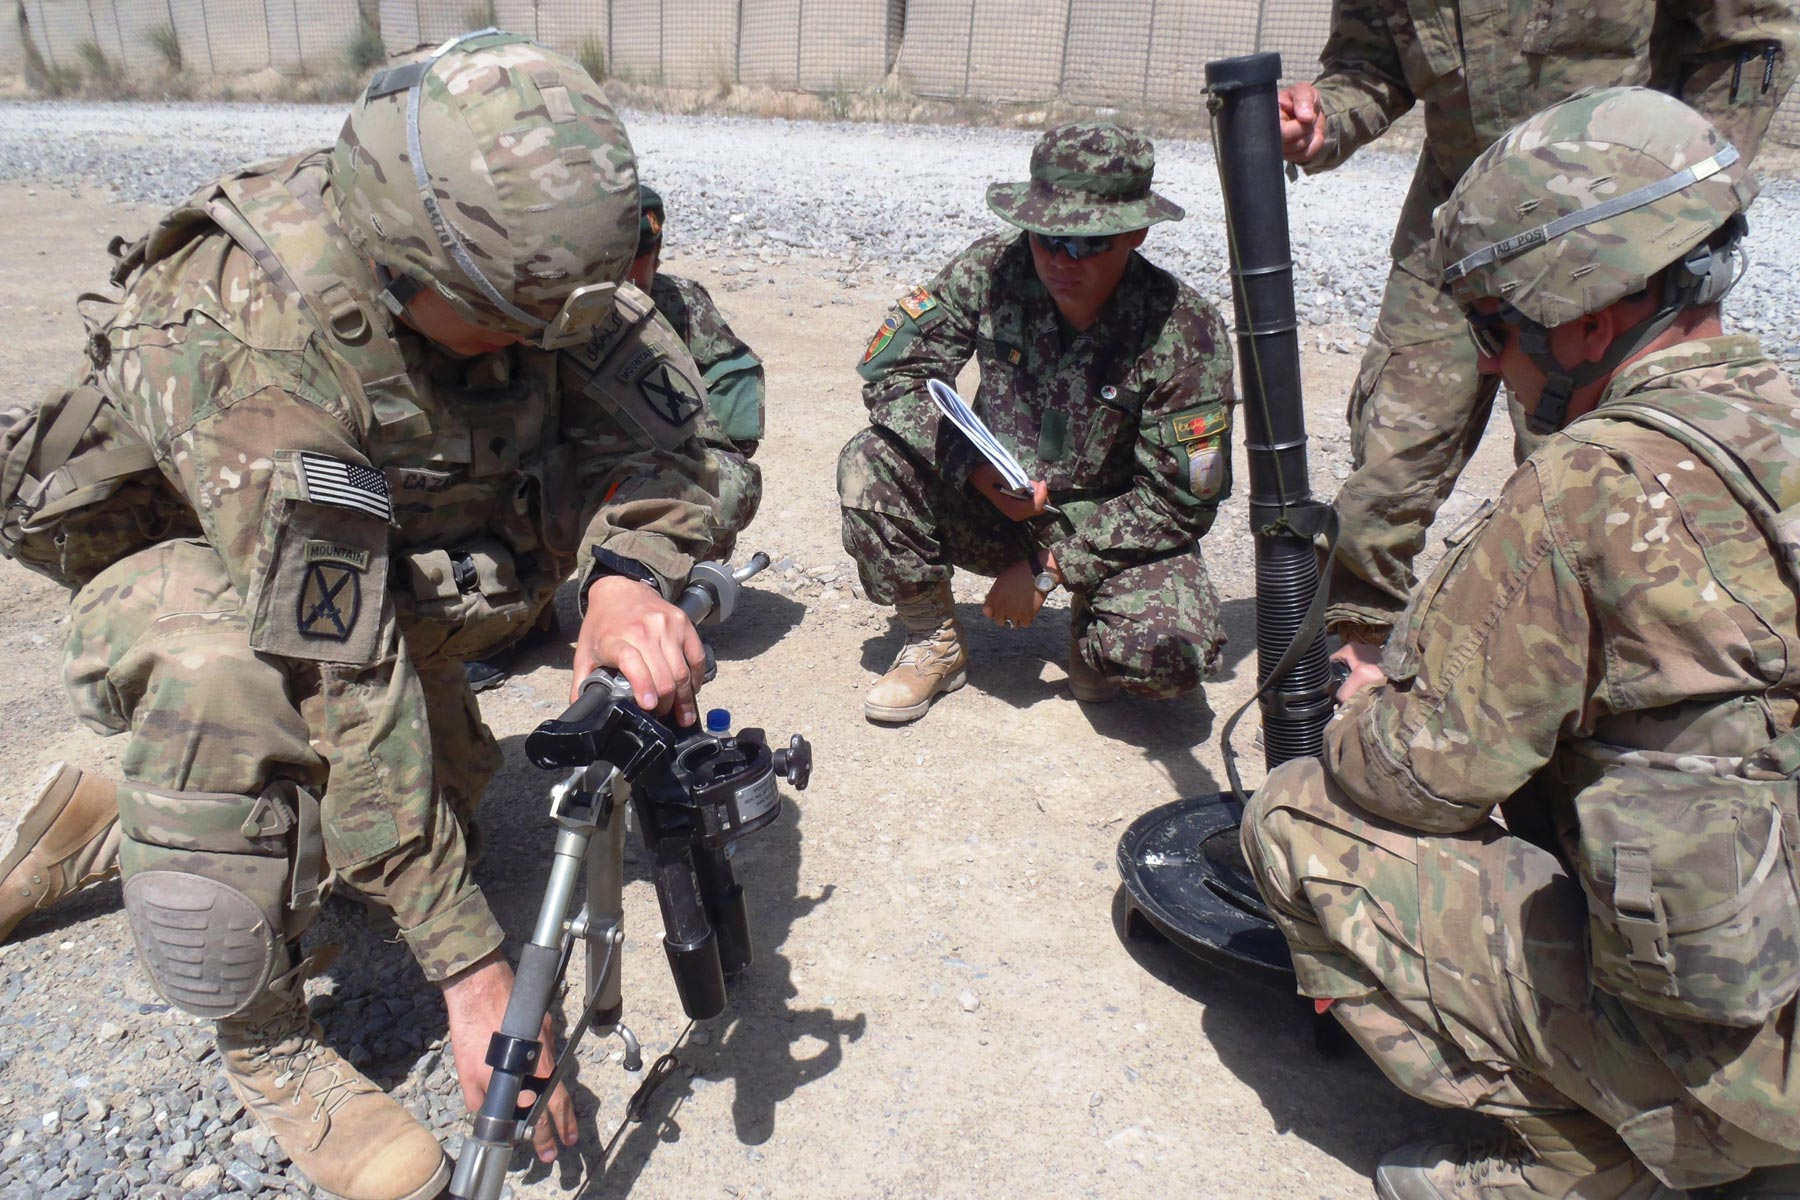 afghan forces need more mortar training  army advisers say